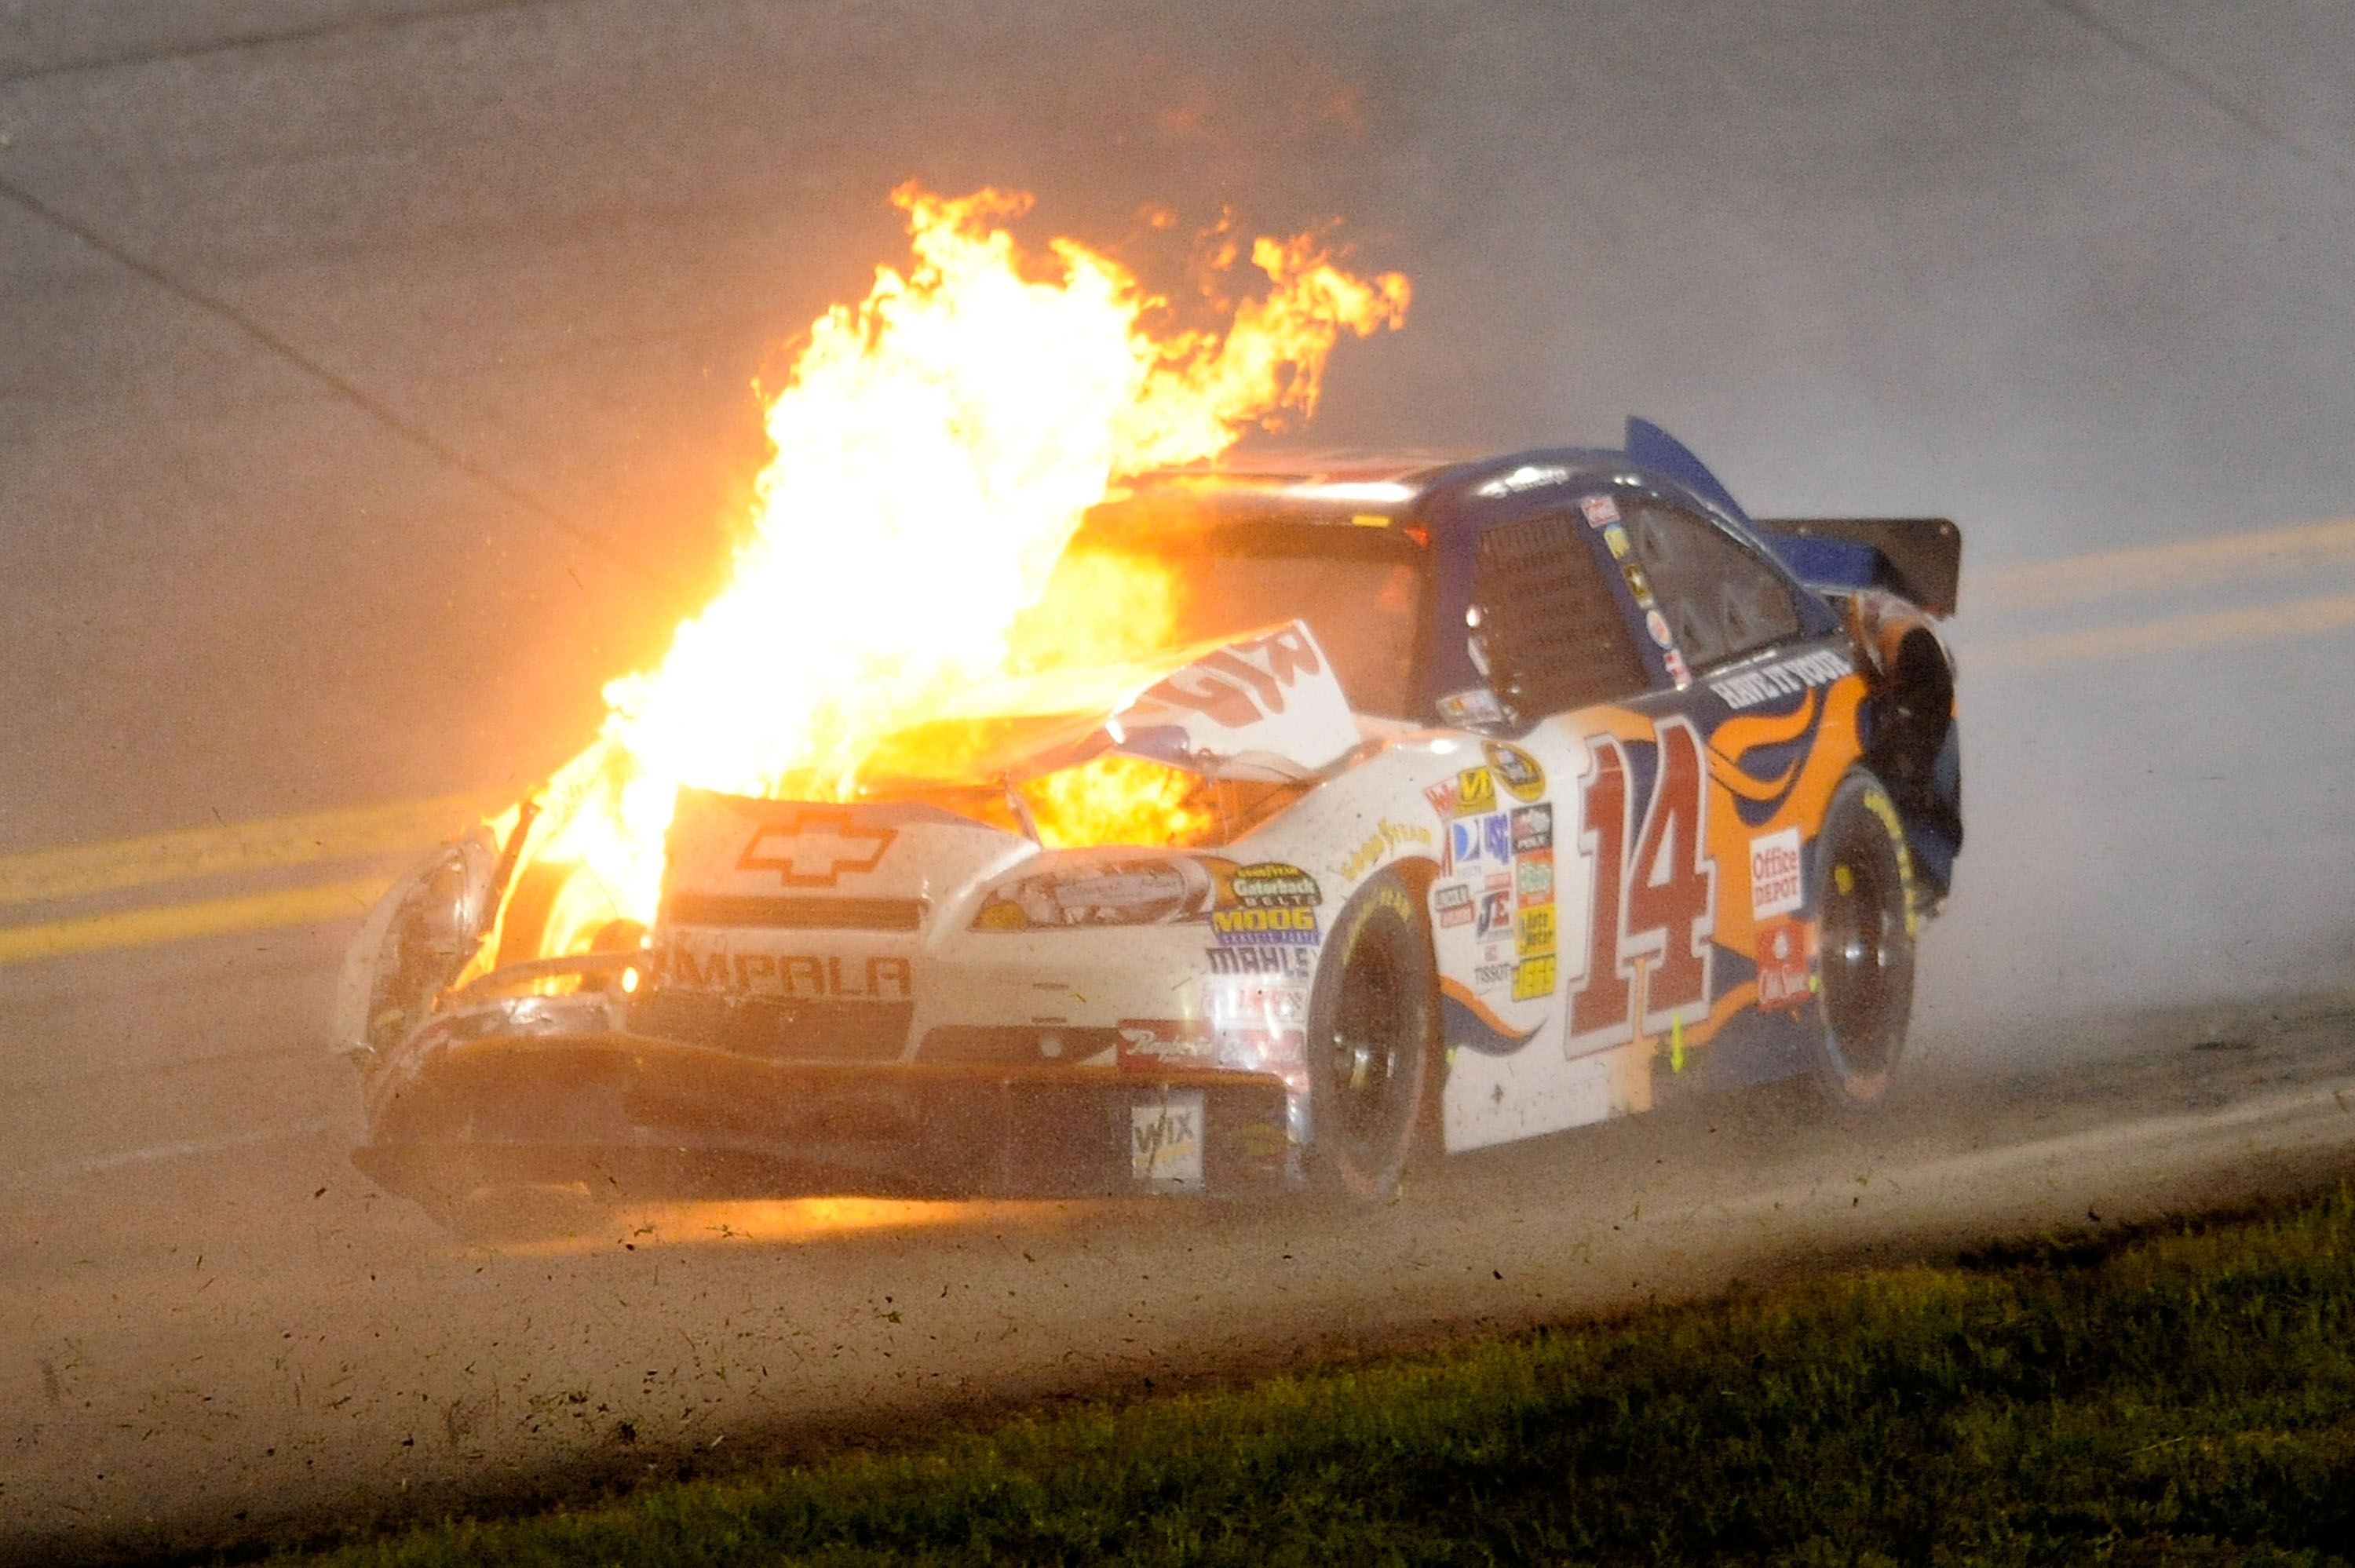 Tony Stewart is one of the best restrictor plate drivers in NASCAR desptie the occasional set backs.